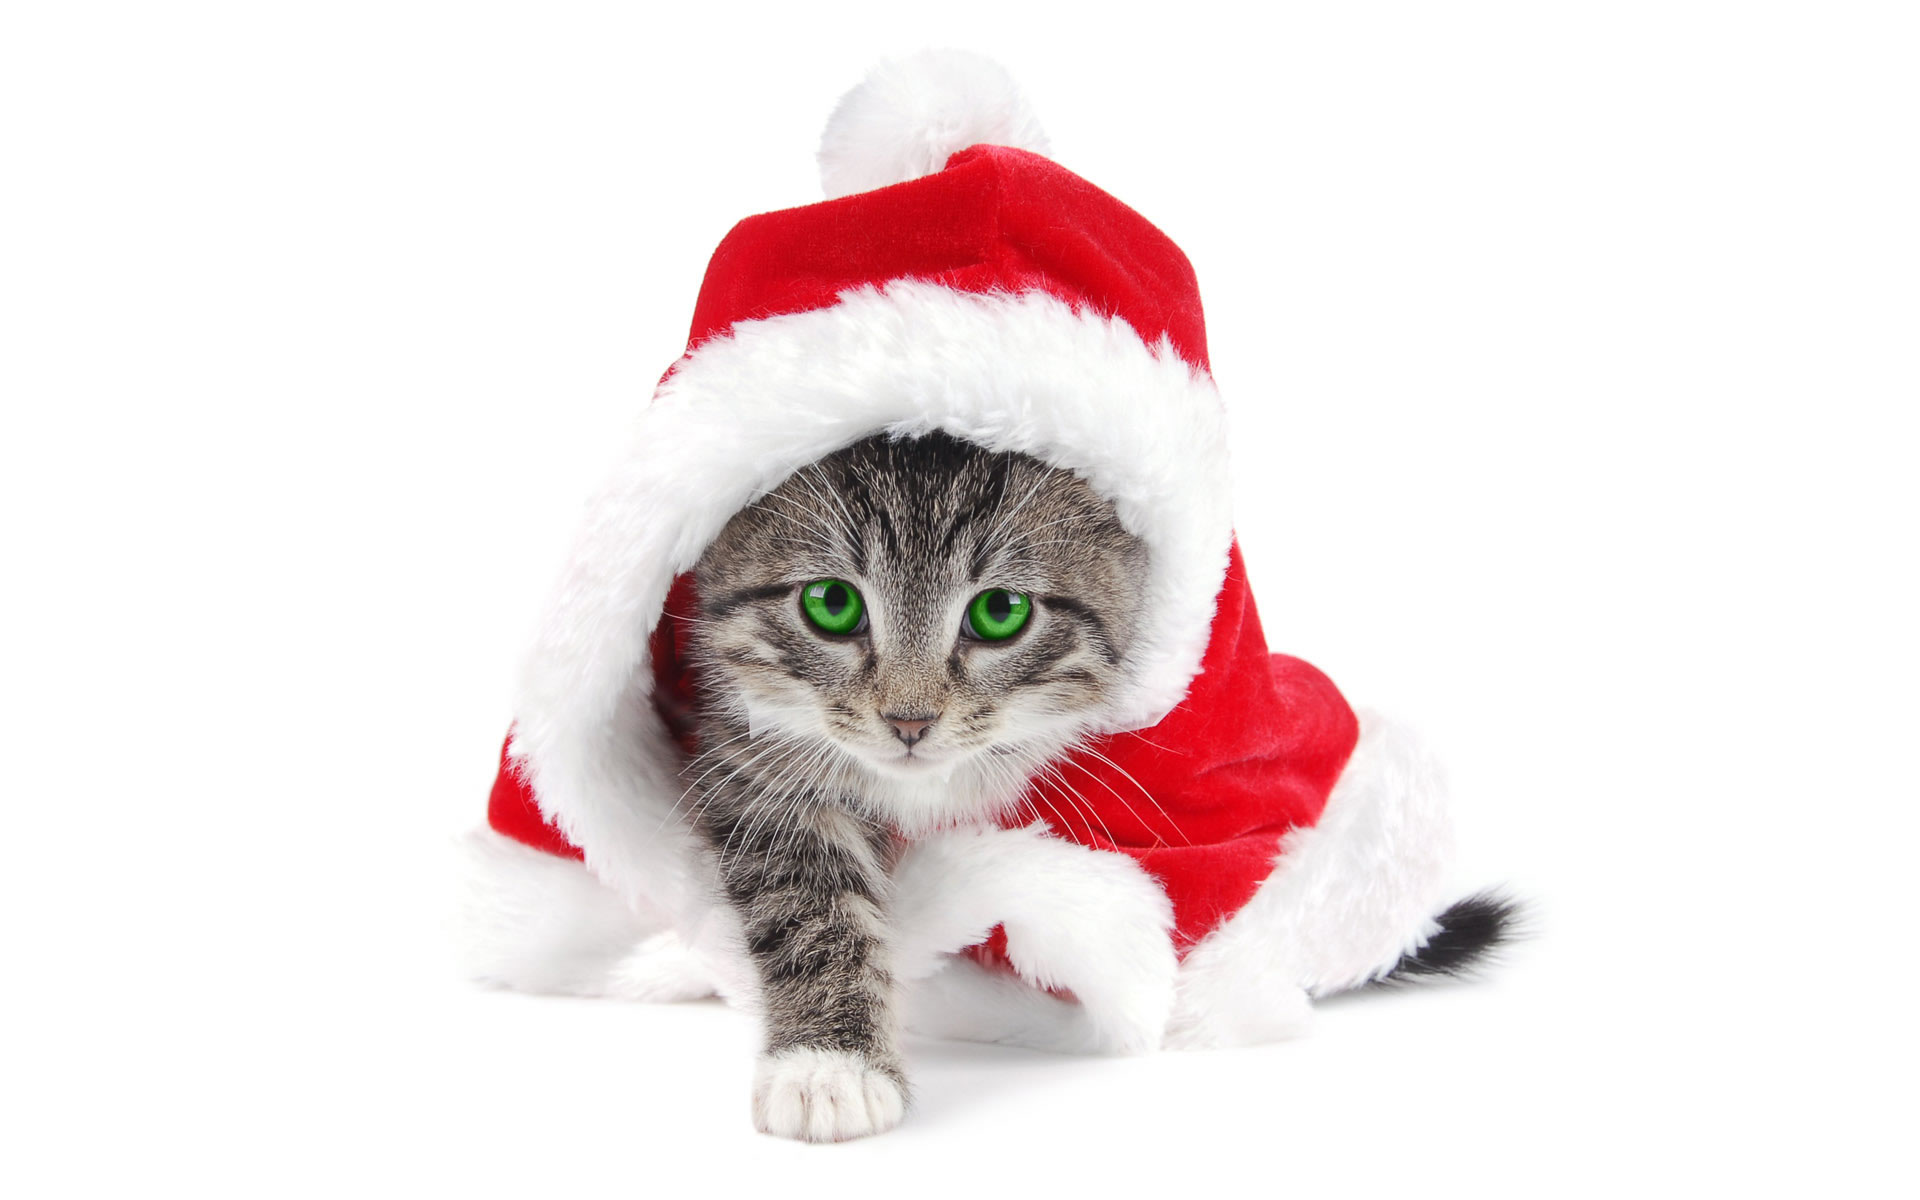 Gatito Santa Claus Wallpaper